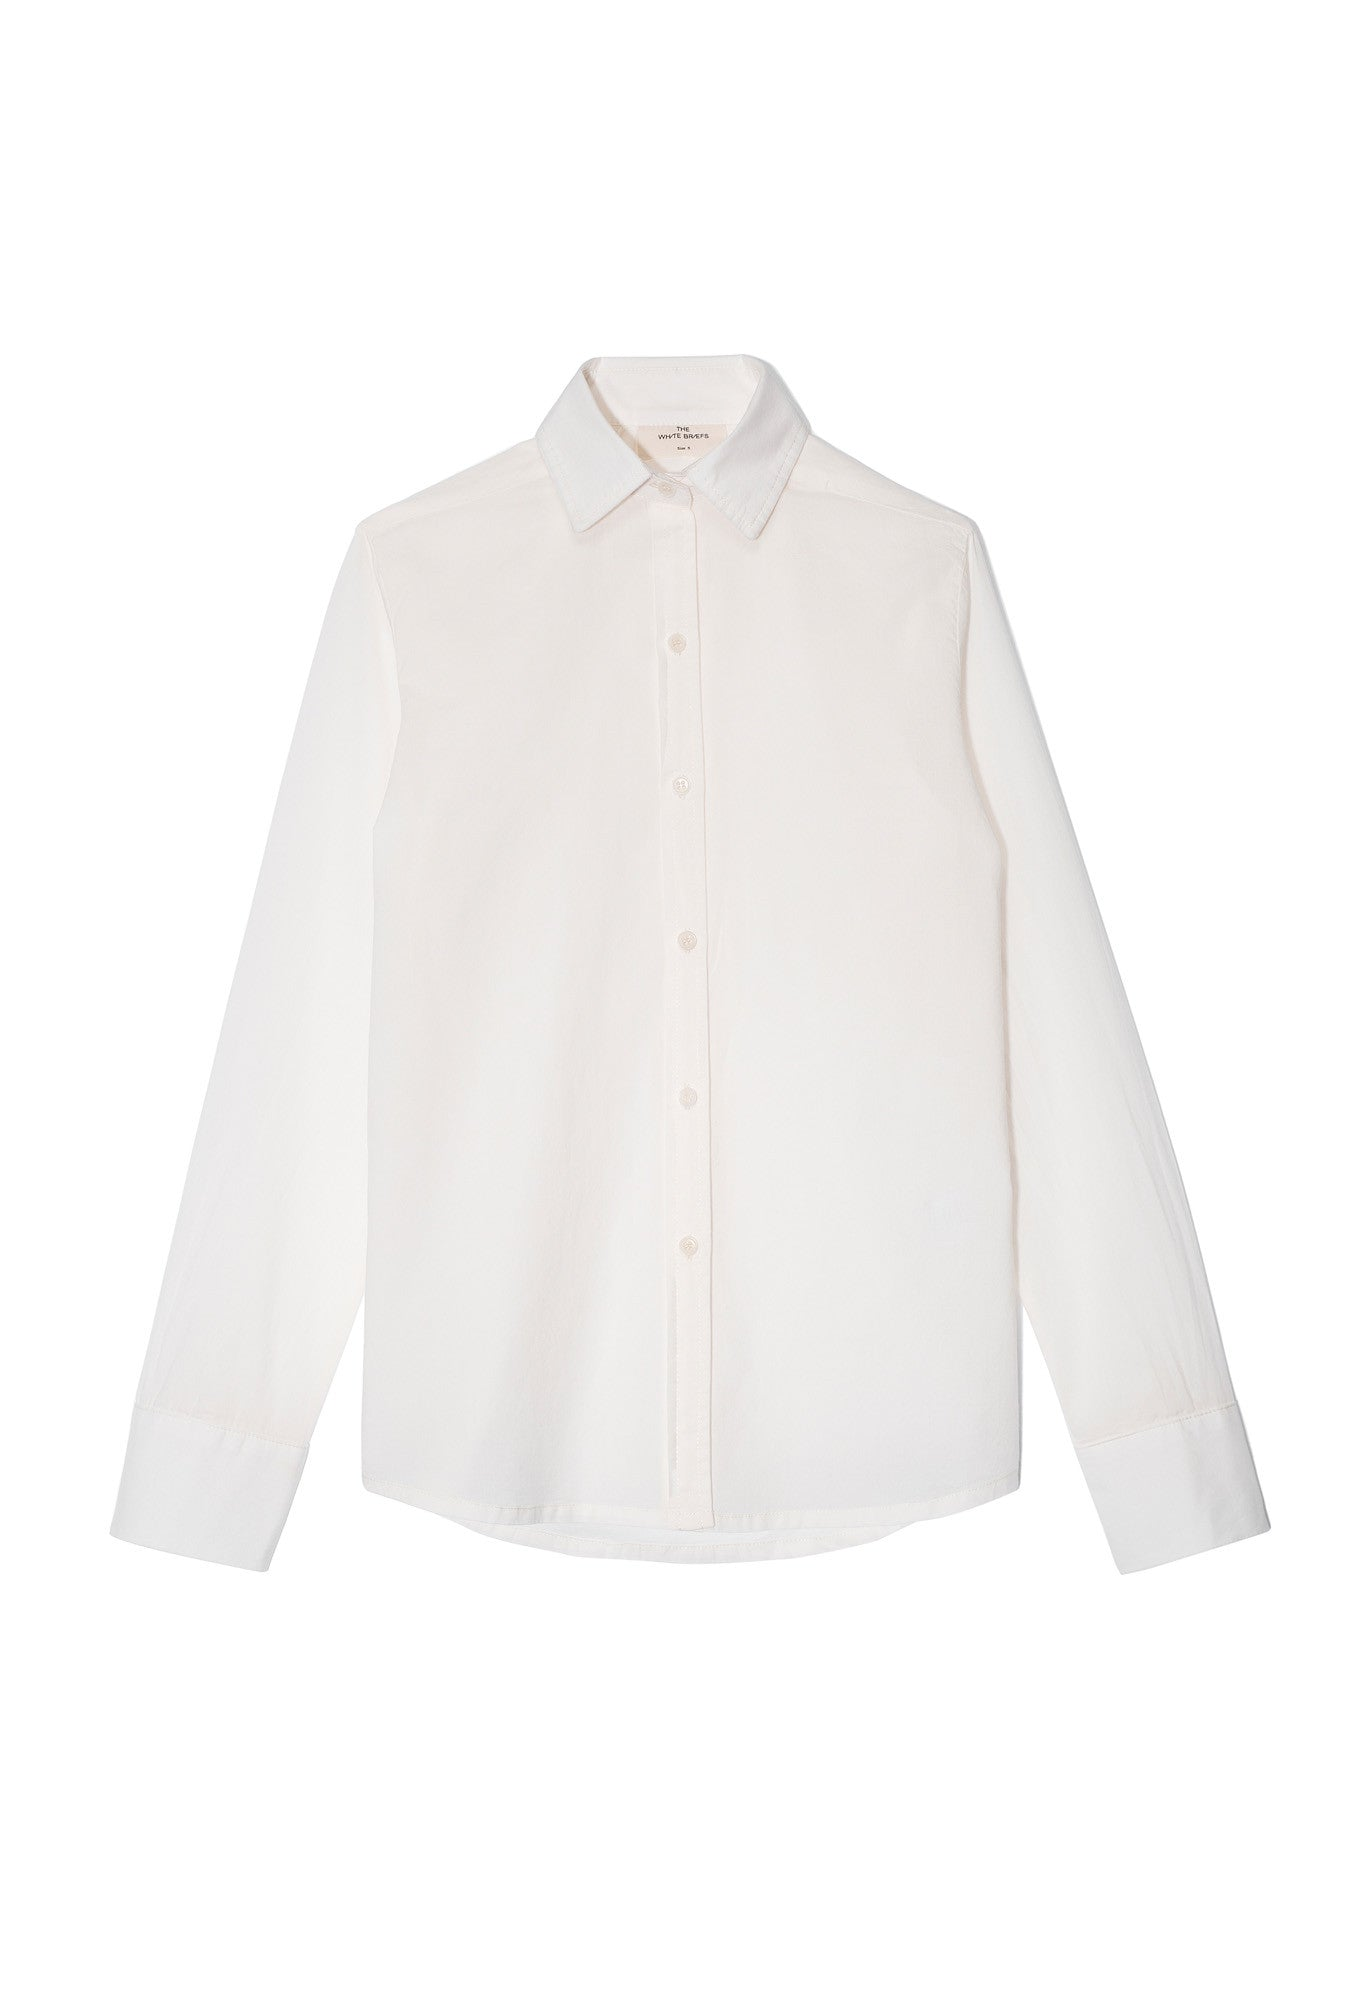 the white briefs fitted shirt in fine 100% organic cotton muslin